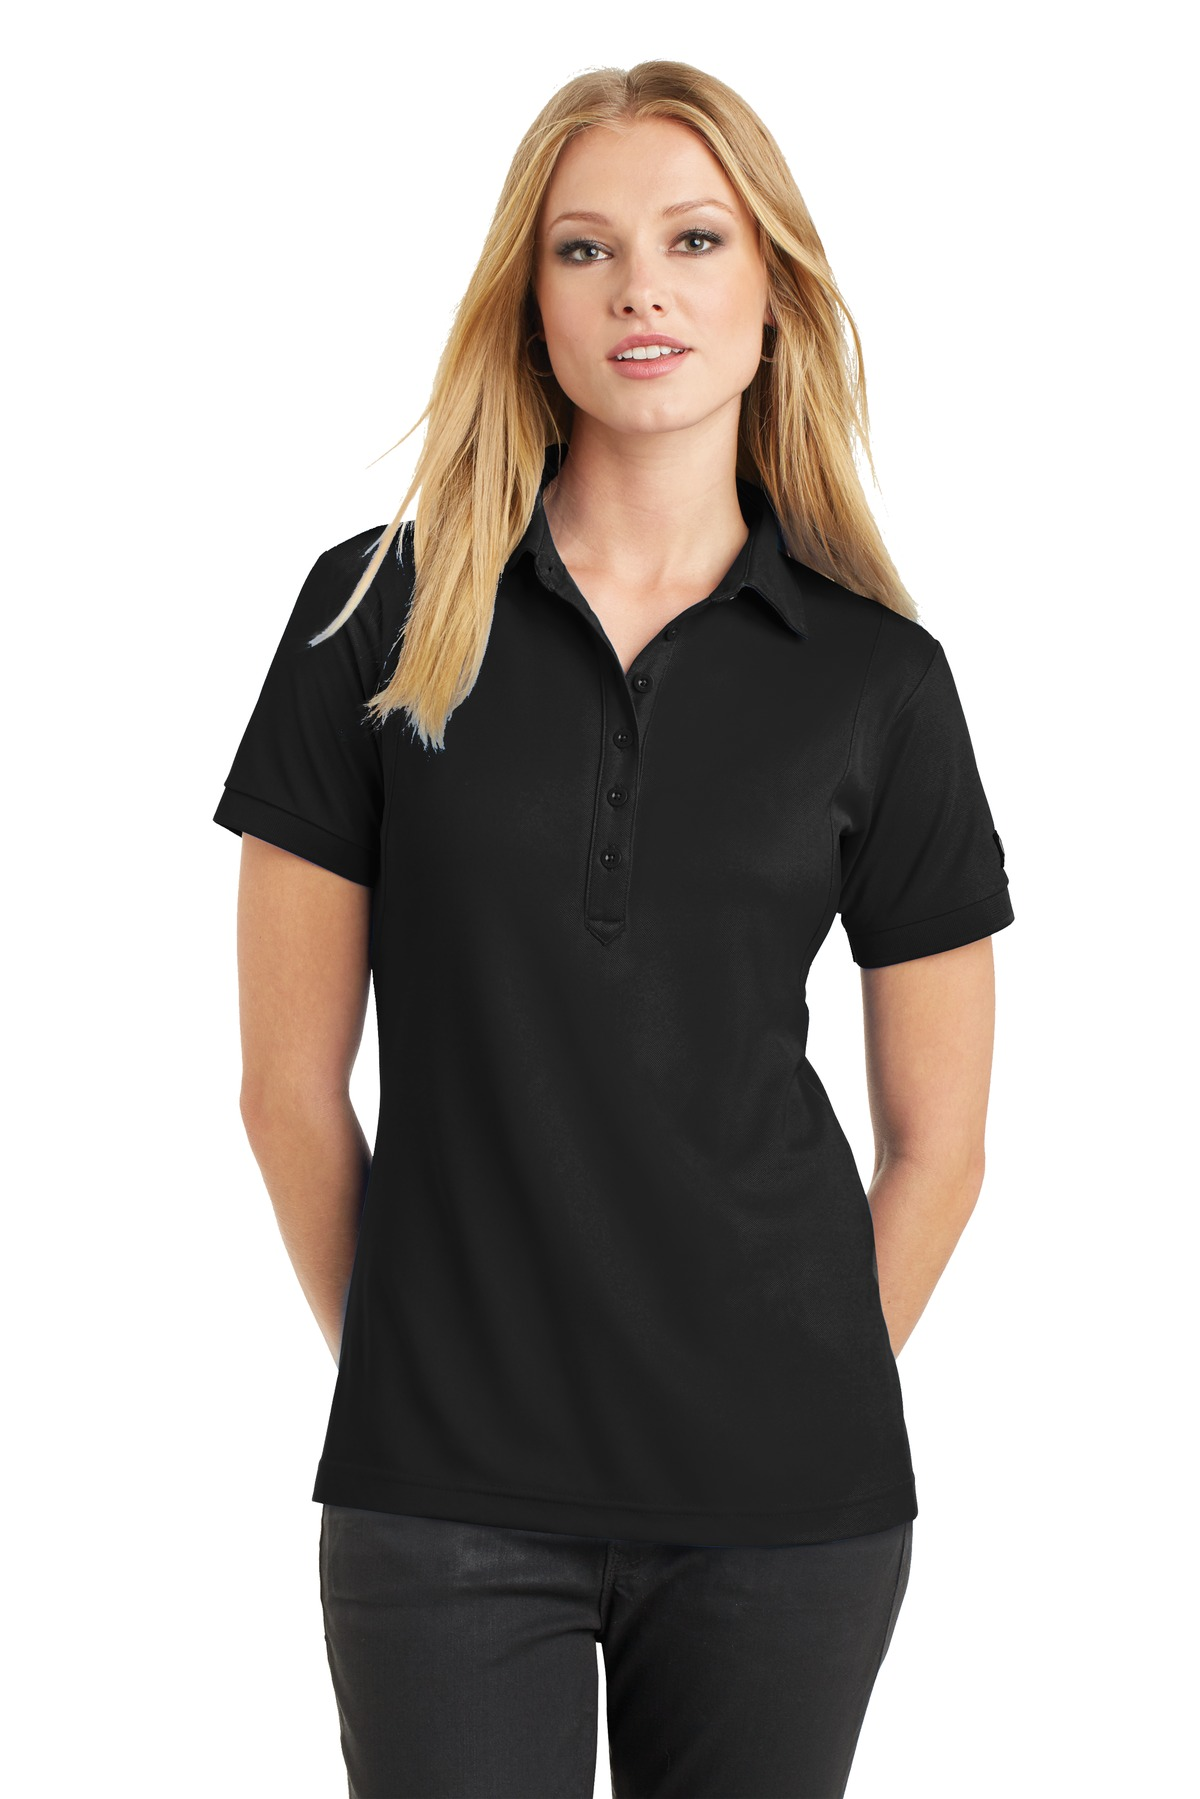 OGIO ®  - Jewel Polo. LOG101 - Blacktop